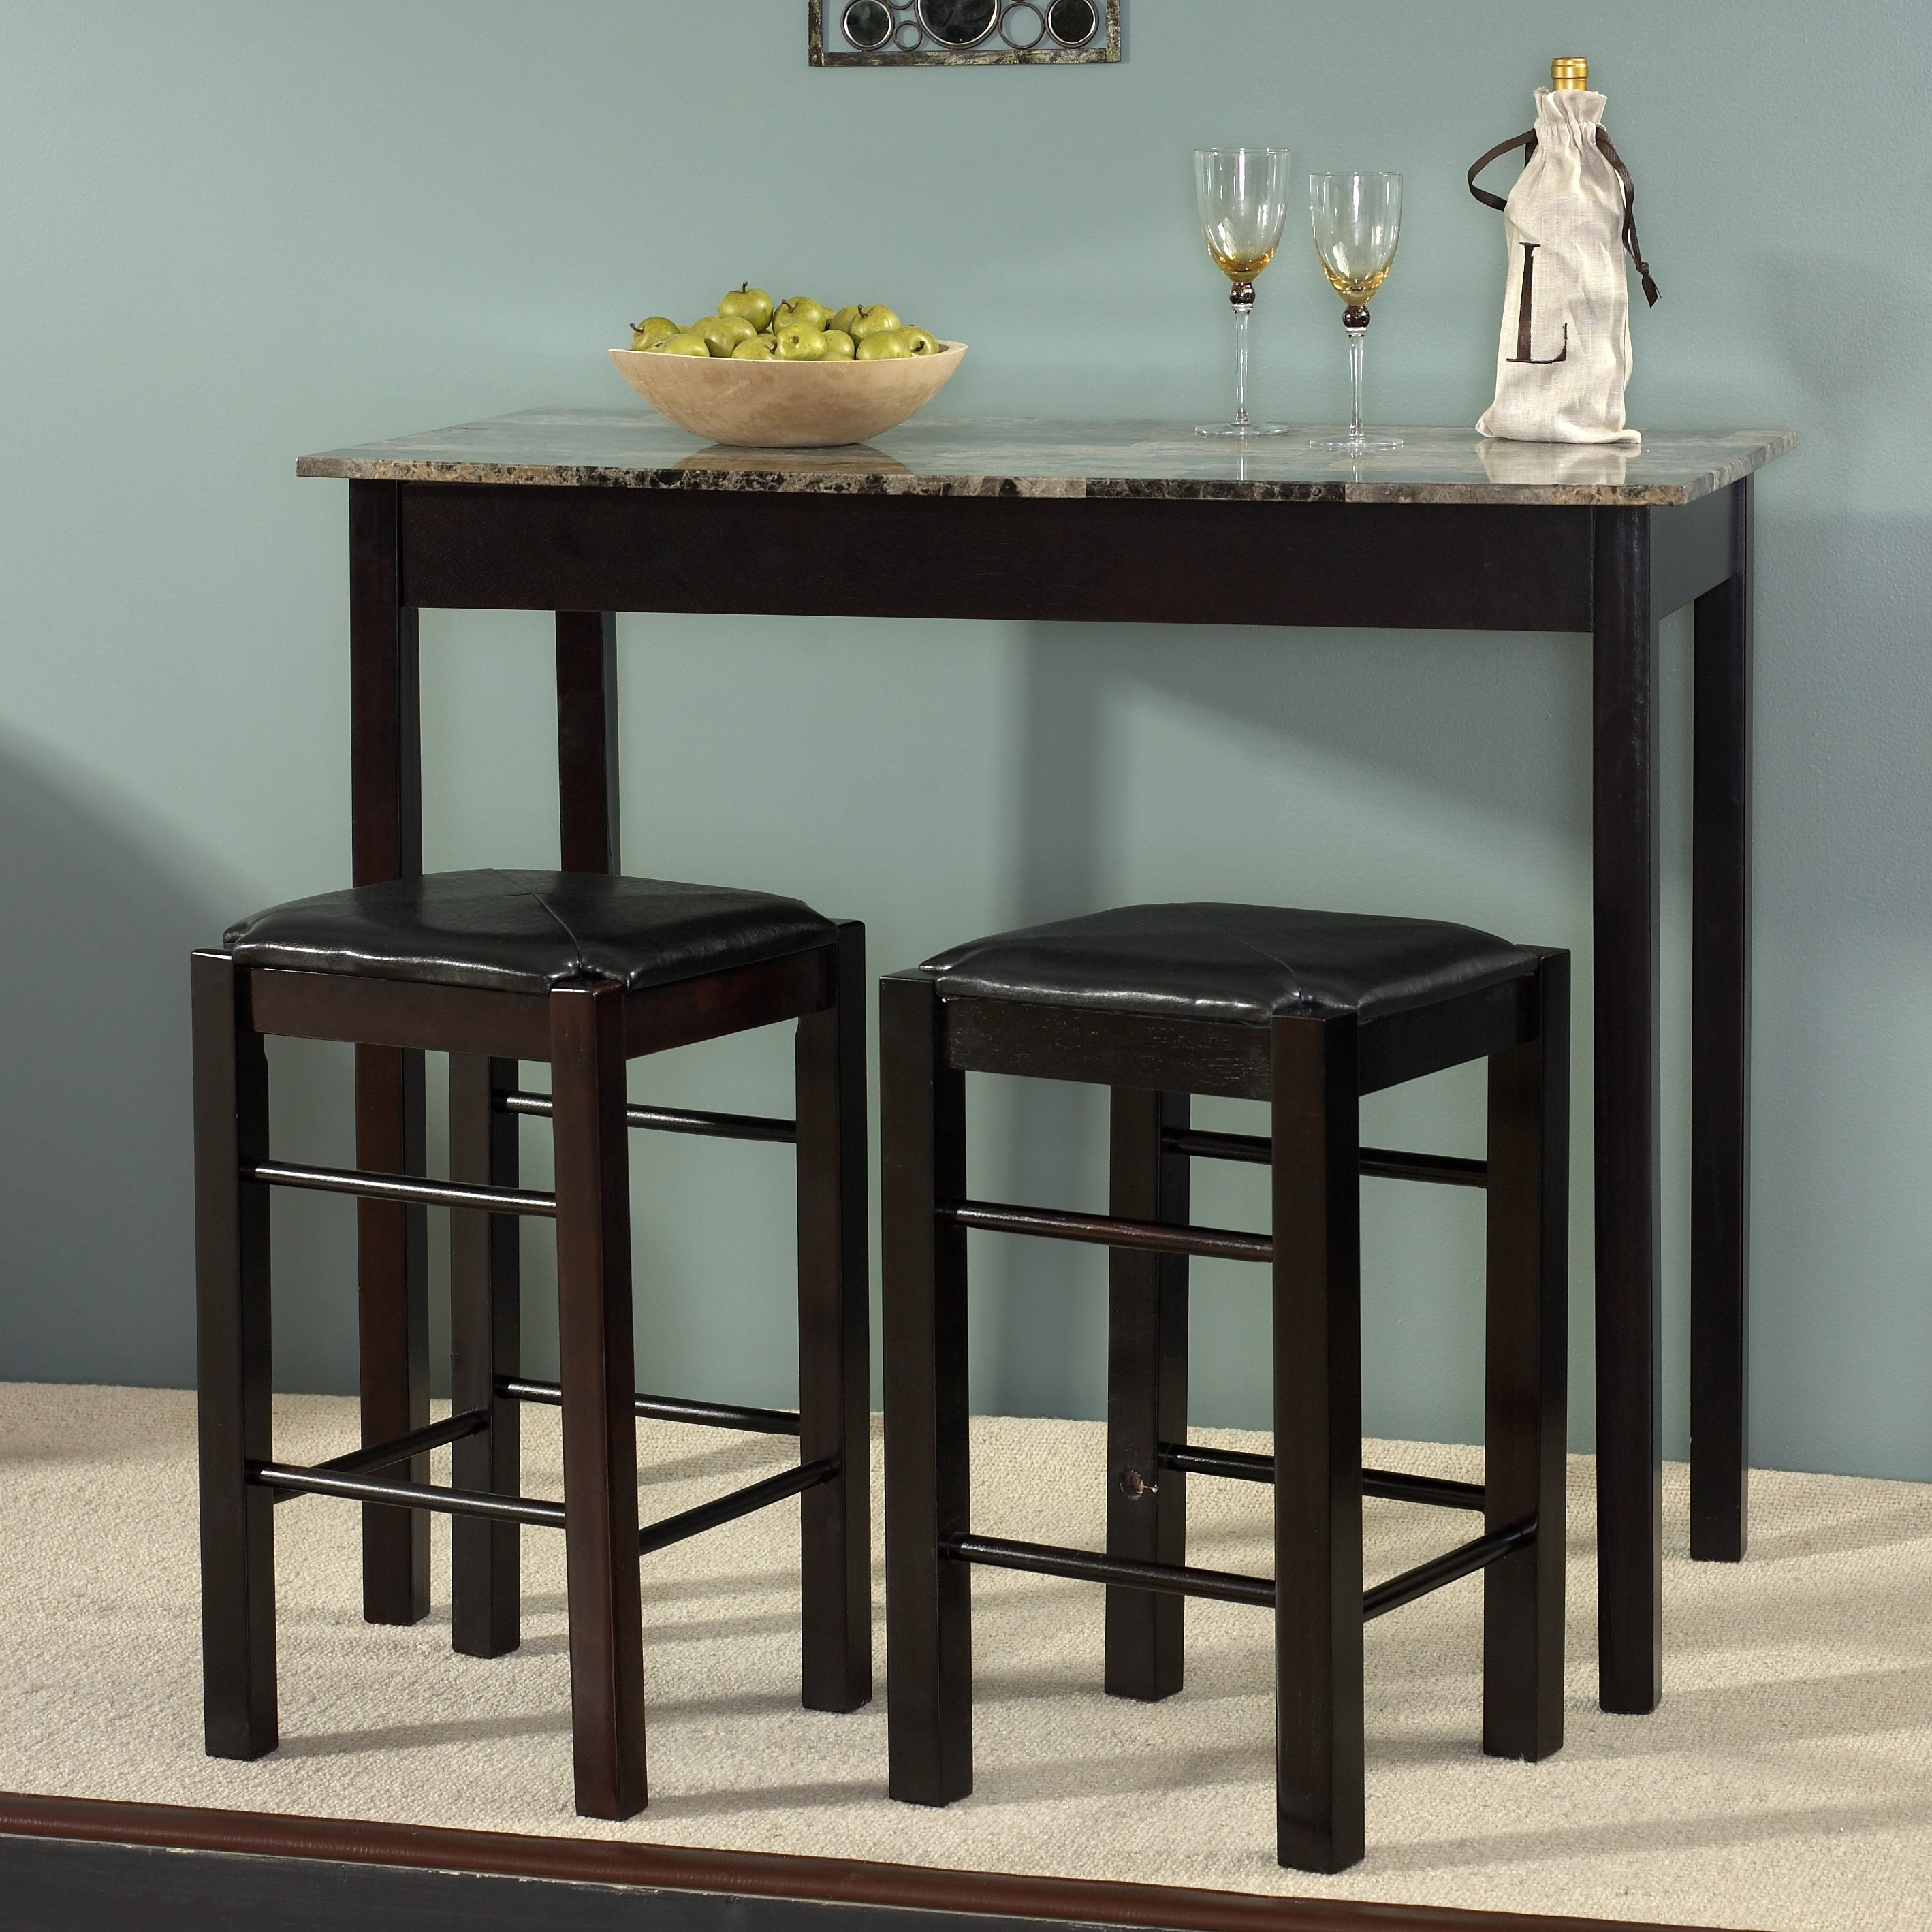 Sheetz 3 Piece Counter Height Dining Set For Recent Winsted 4 Piece Counter Height Dining Sets (View 9 of 20)